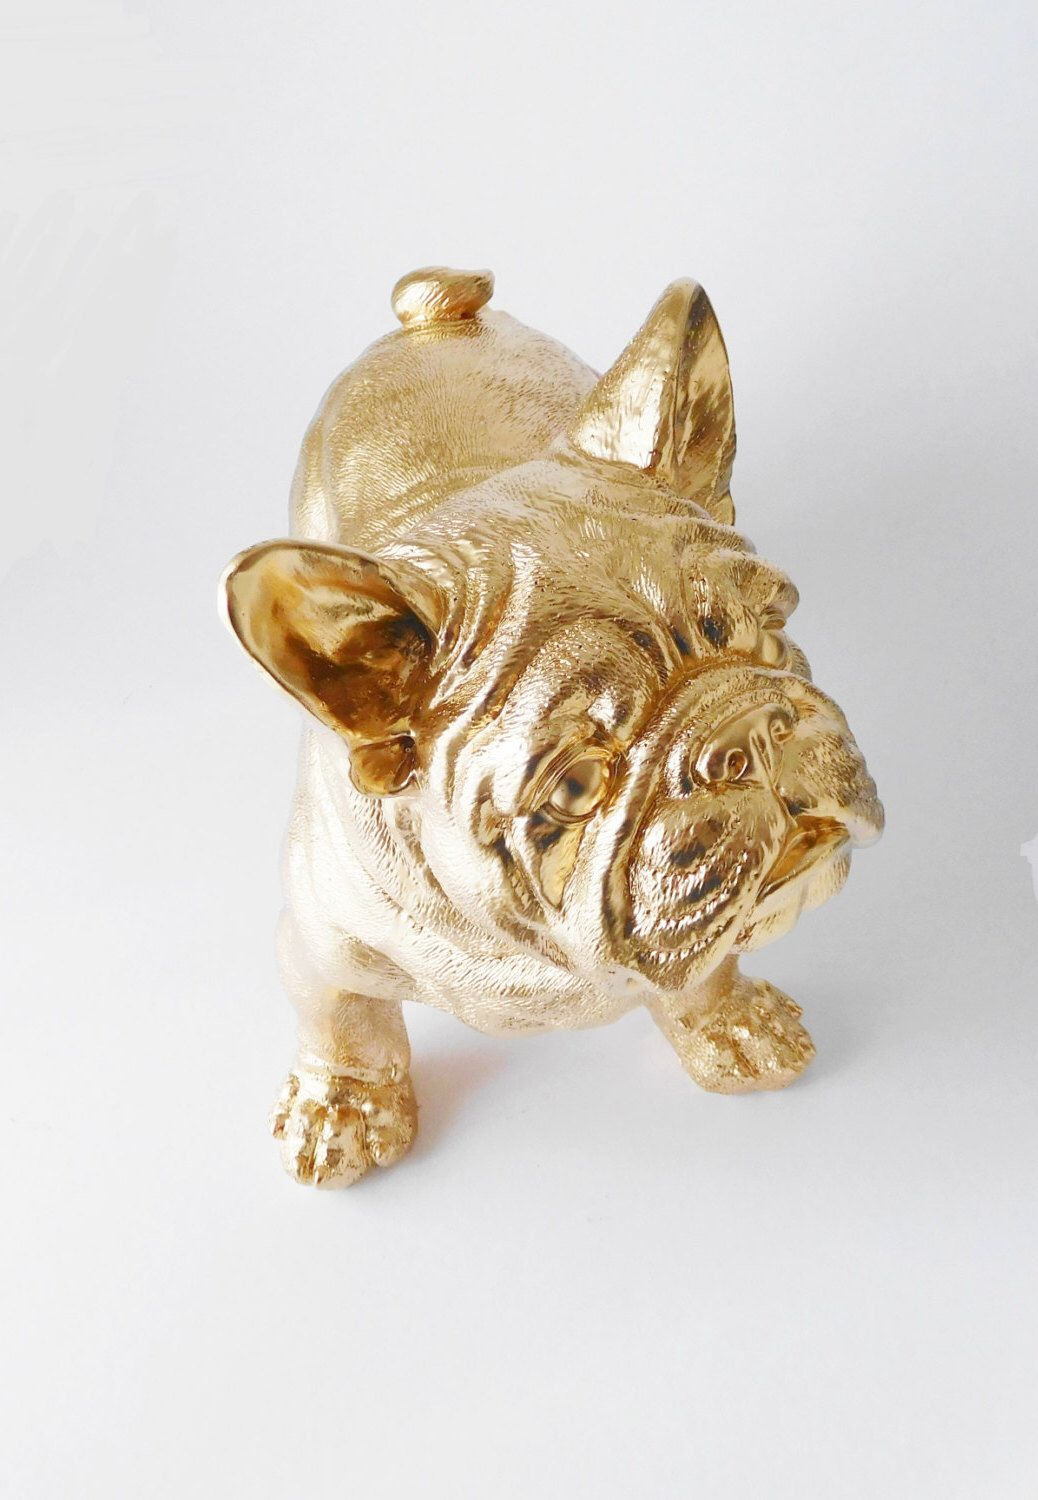 Bouledogue Decoration Design French Bulldog Bulldog Statue Canine Dog Frenchie